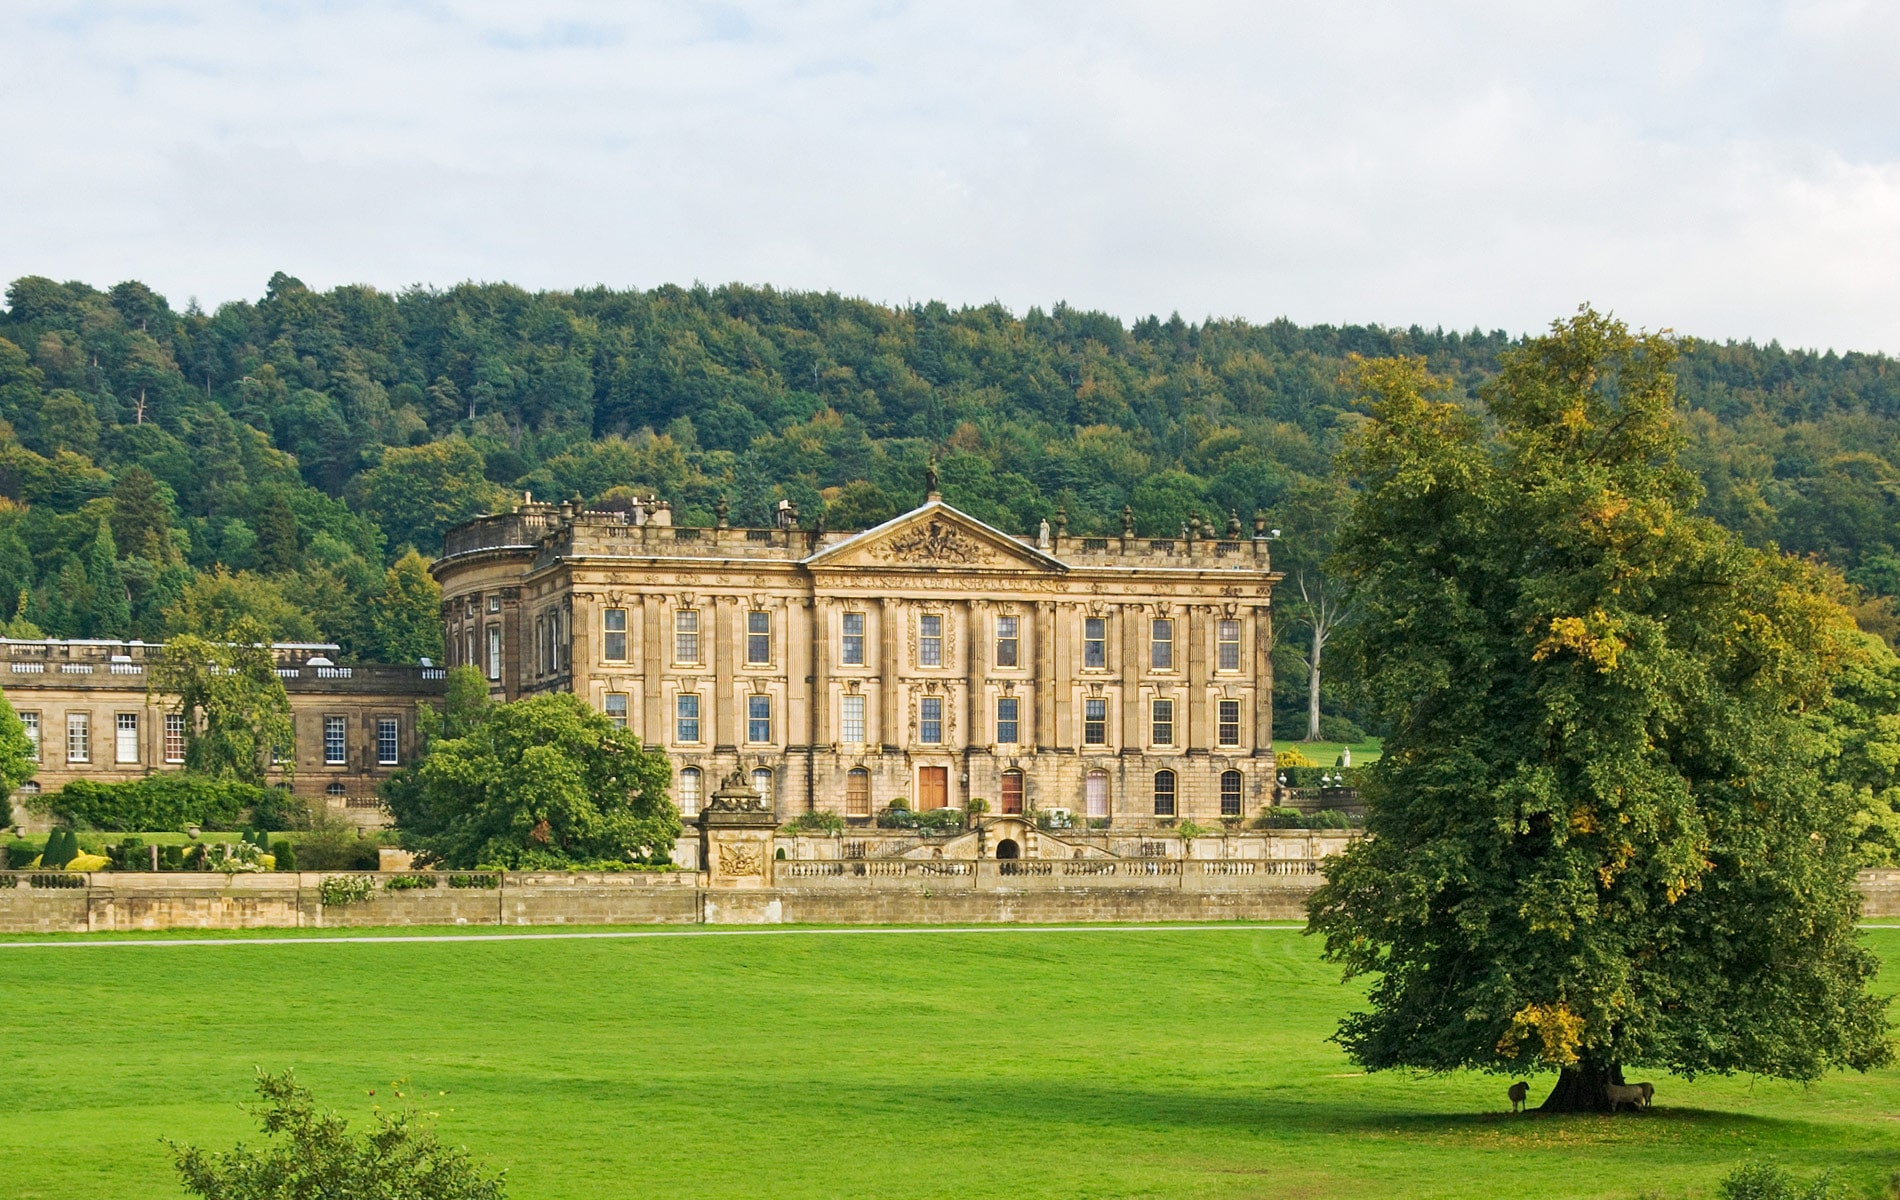 Chatsworth House, built 1707, is the seat of the Dukes of Devonshire and famous among the stately homes of England. It is open to the public daily for tours and its gardens include a variety of sculptures. | Photo by Jane McIlroy / Shutterstock